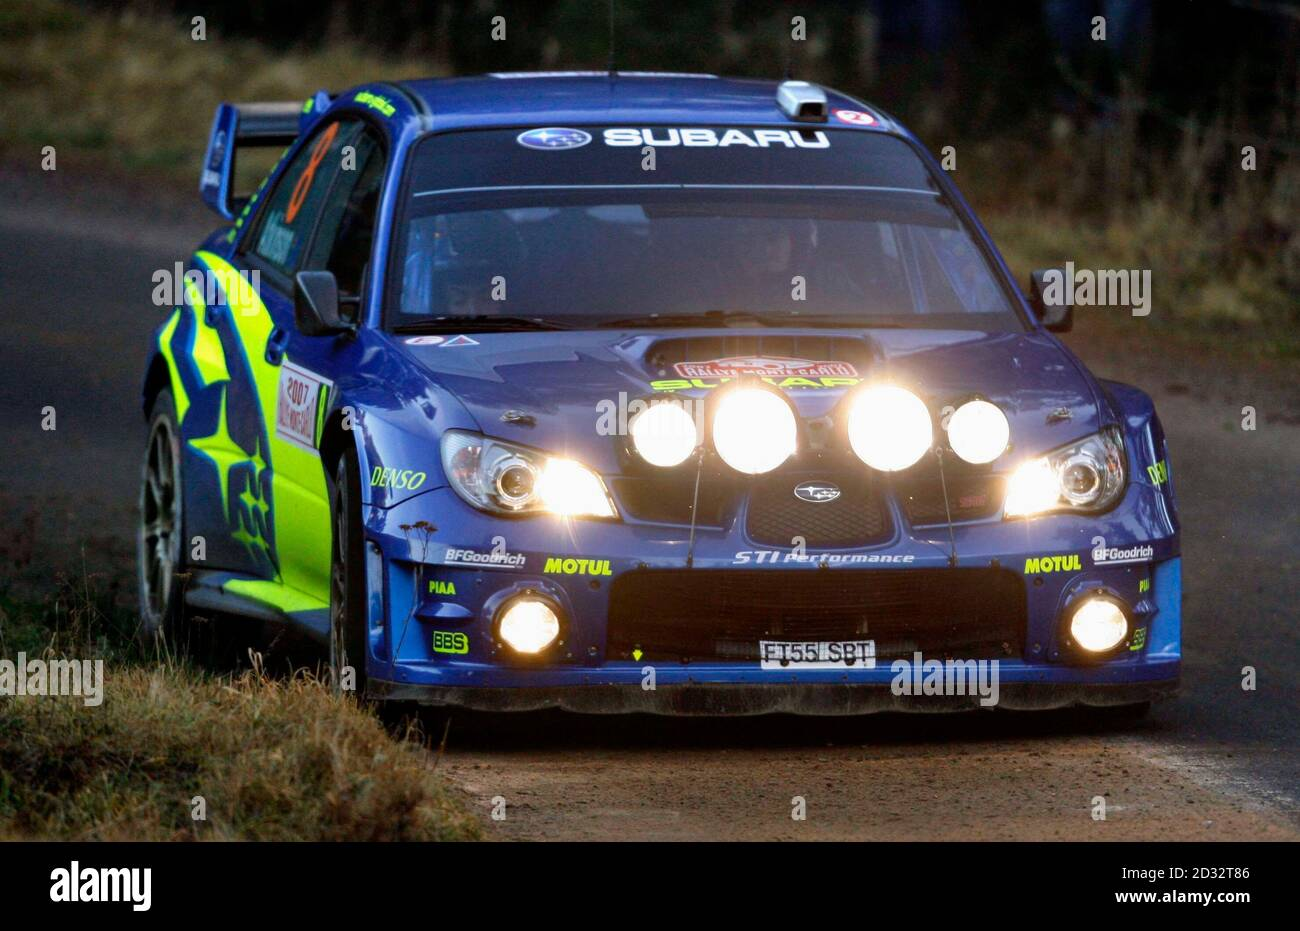 Chris Atkinson and Glenn MacNeall of Australia drive their Subaru Impreza WRC during the tenth stage of the Rally of Monte-Carlo, the loop stage starting at Saint-Bonnet-le-Froid, southeastern France, January 20, 2007.   REUTERS/Robert Pratta  (FRANCE) Banque D'Images